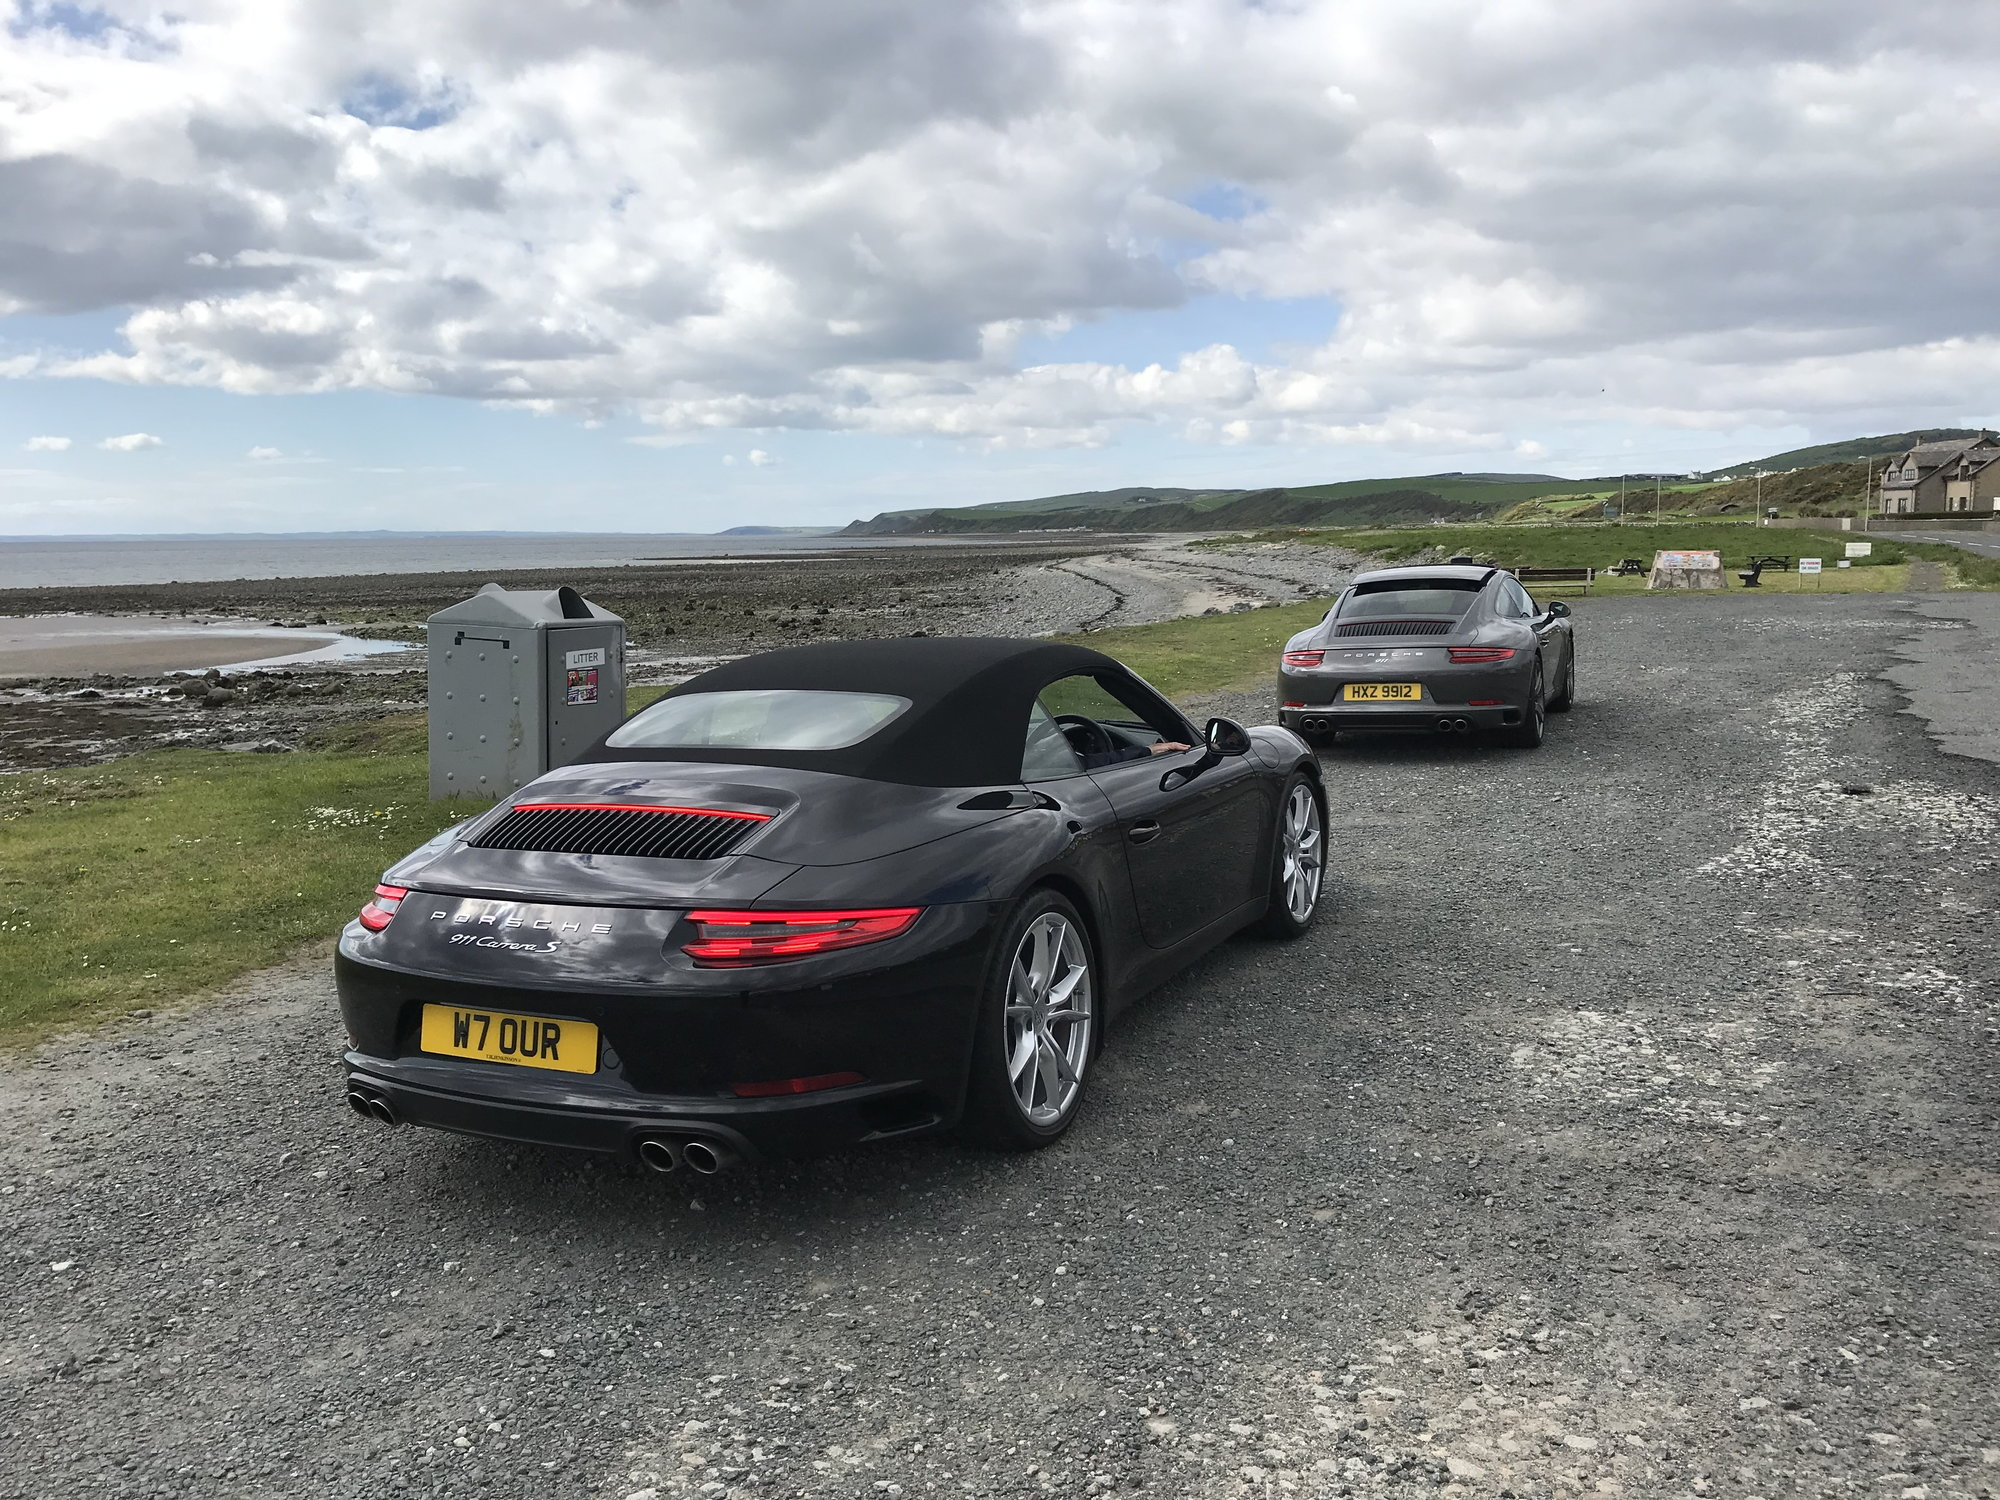 Let's See Your Recent Drive Pictures...